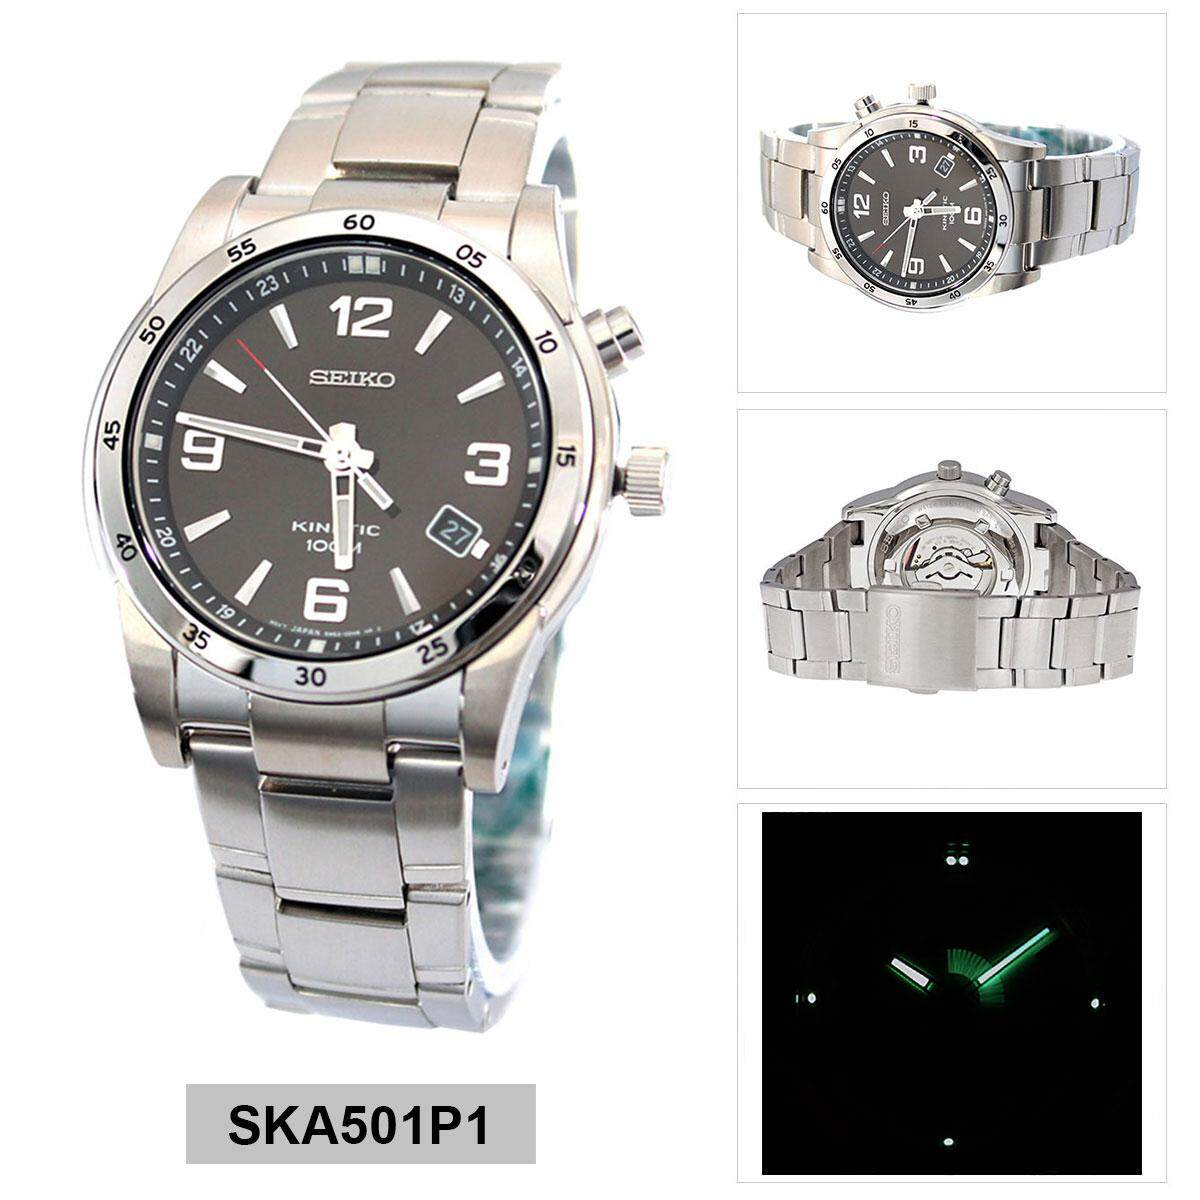 Sell Seiko Kinetic Millitary Cheapest Best Quality Th Store Ska683p1 Silver Dial Stainless Steel Bracelet Mens Watch Blue Strap Ska267p1thb5900 Thb 6430